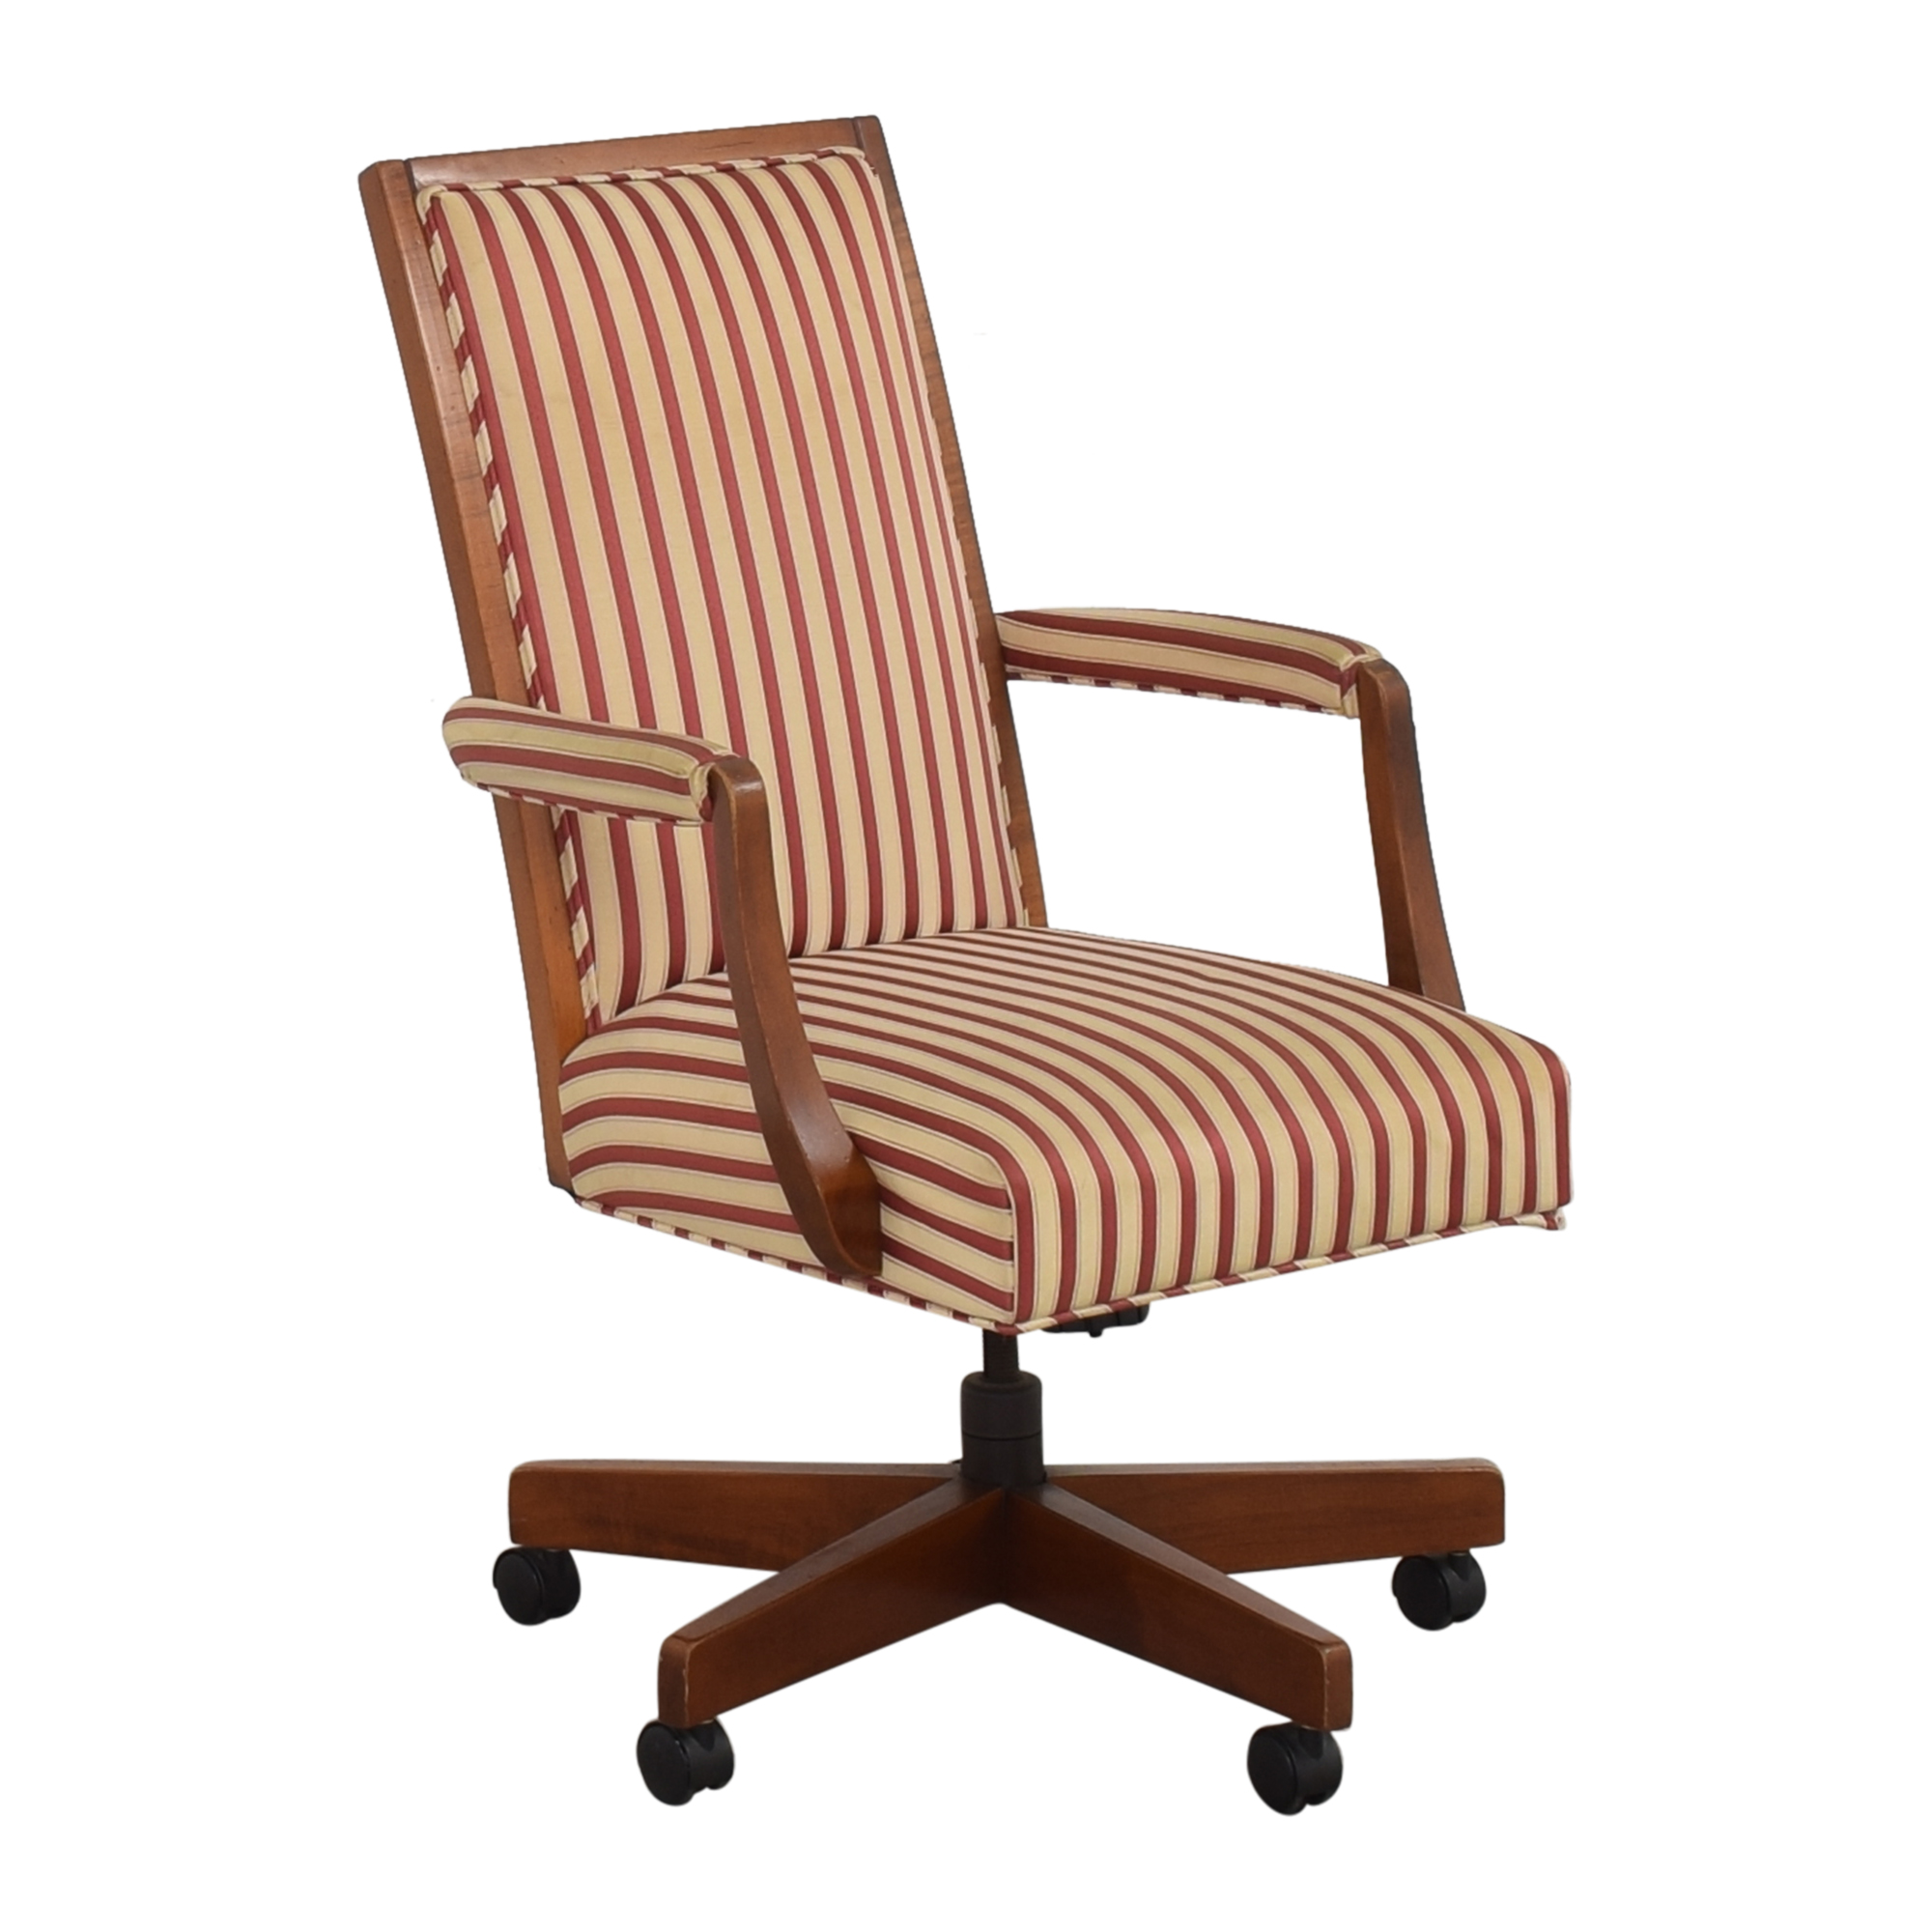 Image of: 74 Off Ethan Allen Ethan Allen Stripe Upholstered Desk Chair Chairs